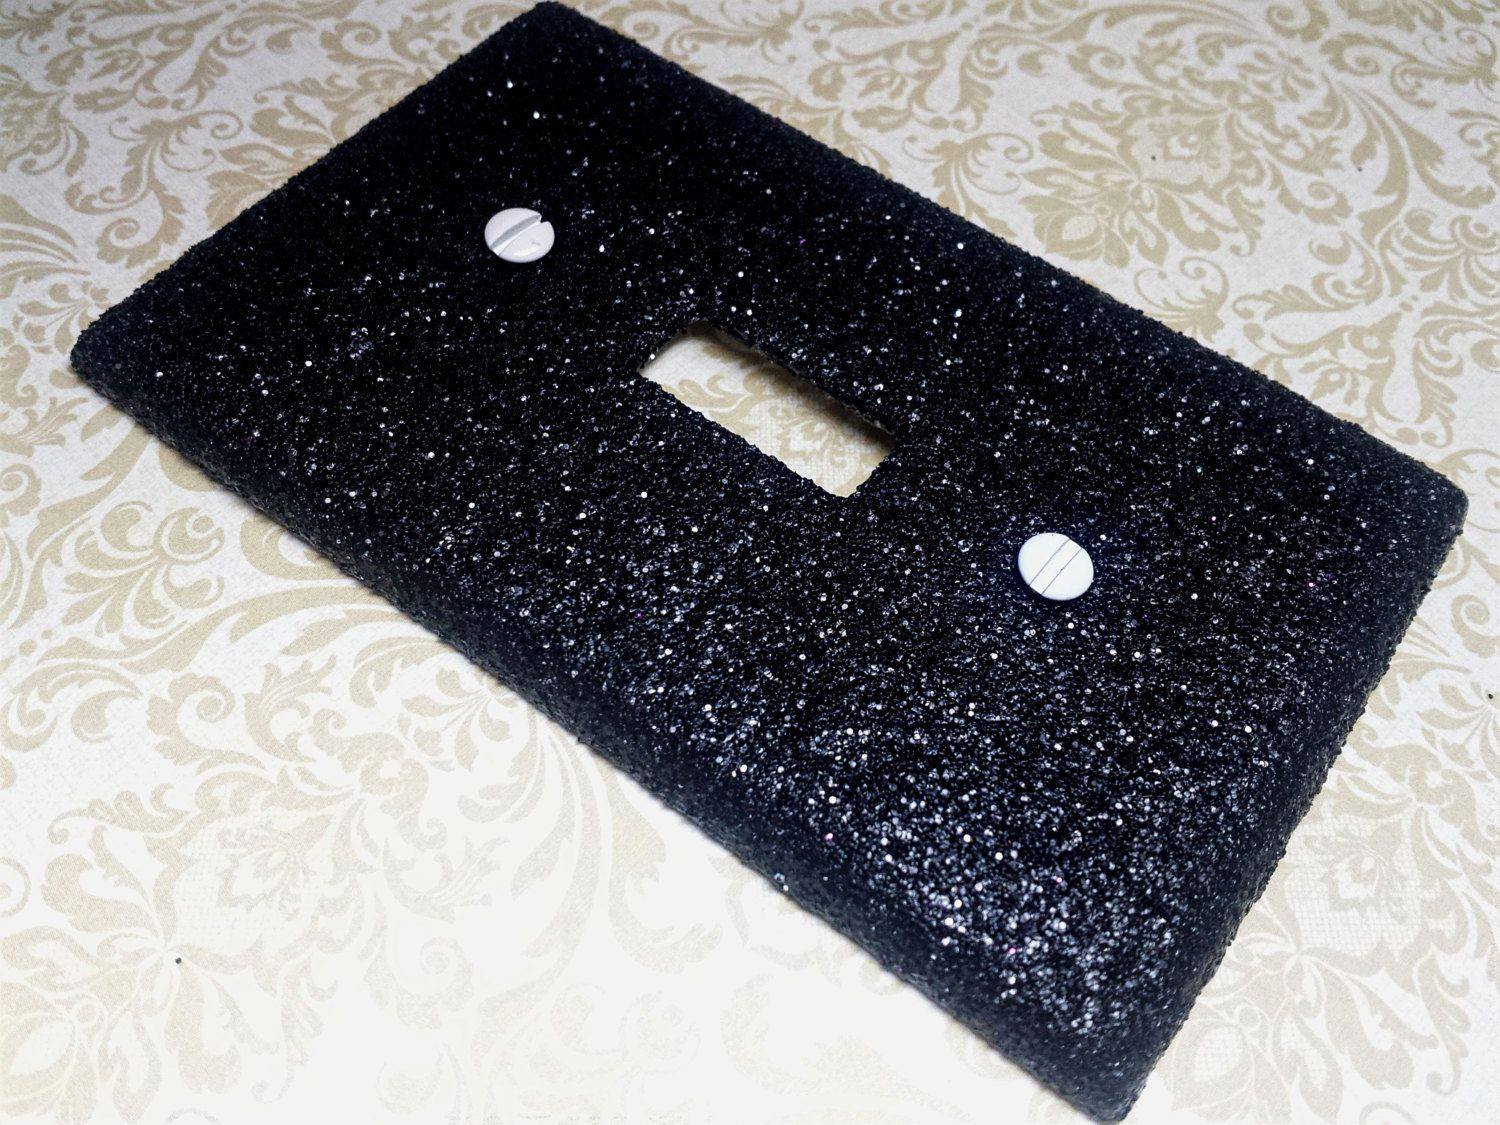 decorative pitch black glitter bling light switch plates rockers u0026 outlet covers - Decorative Switch Plates